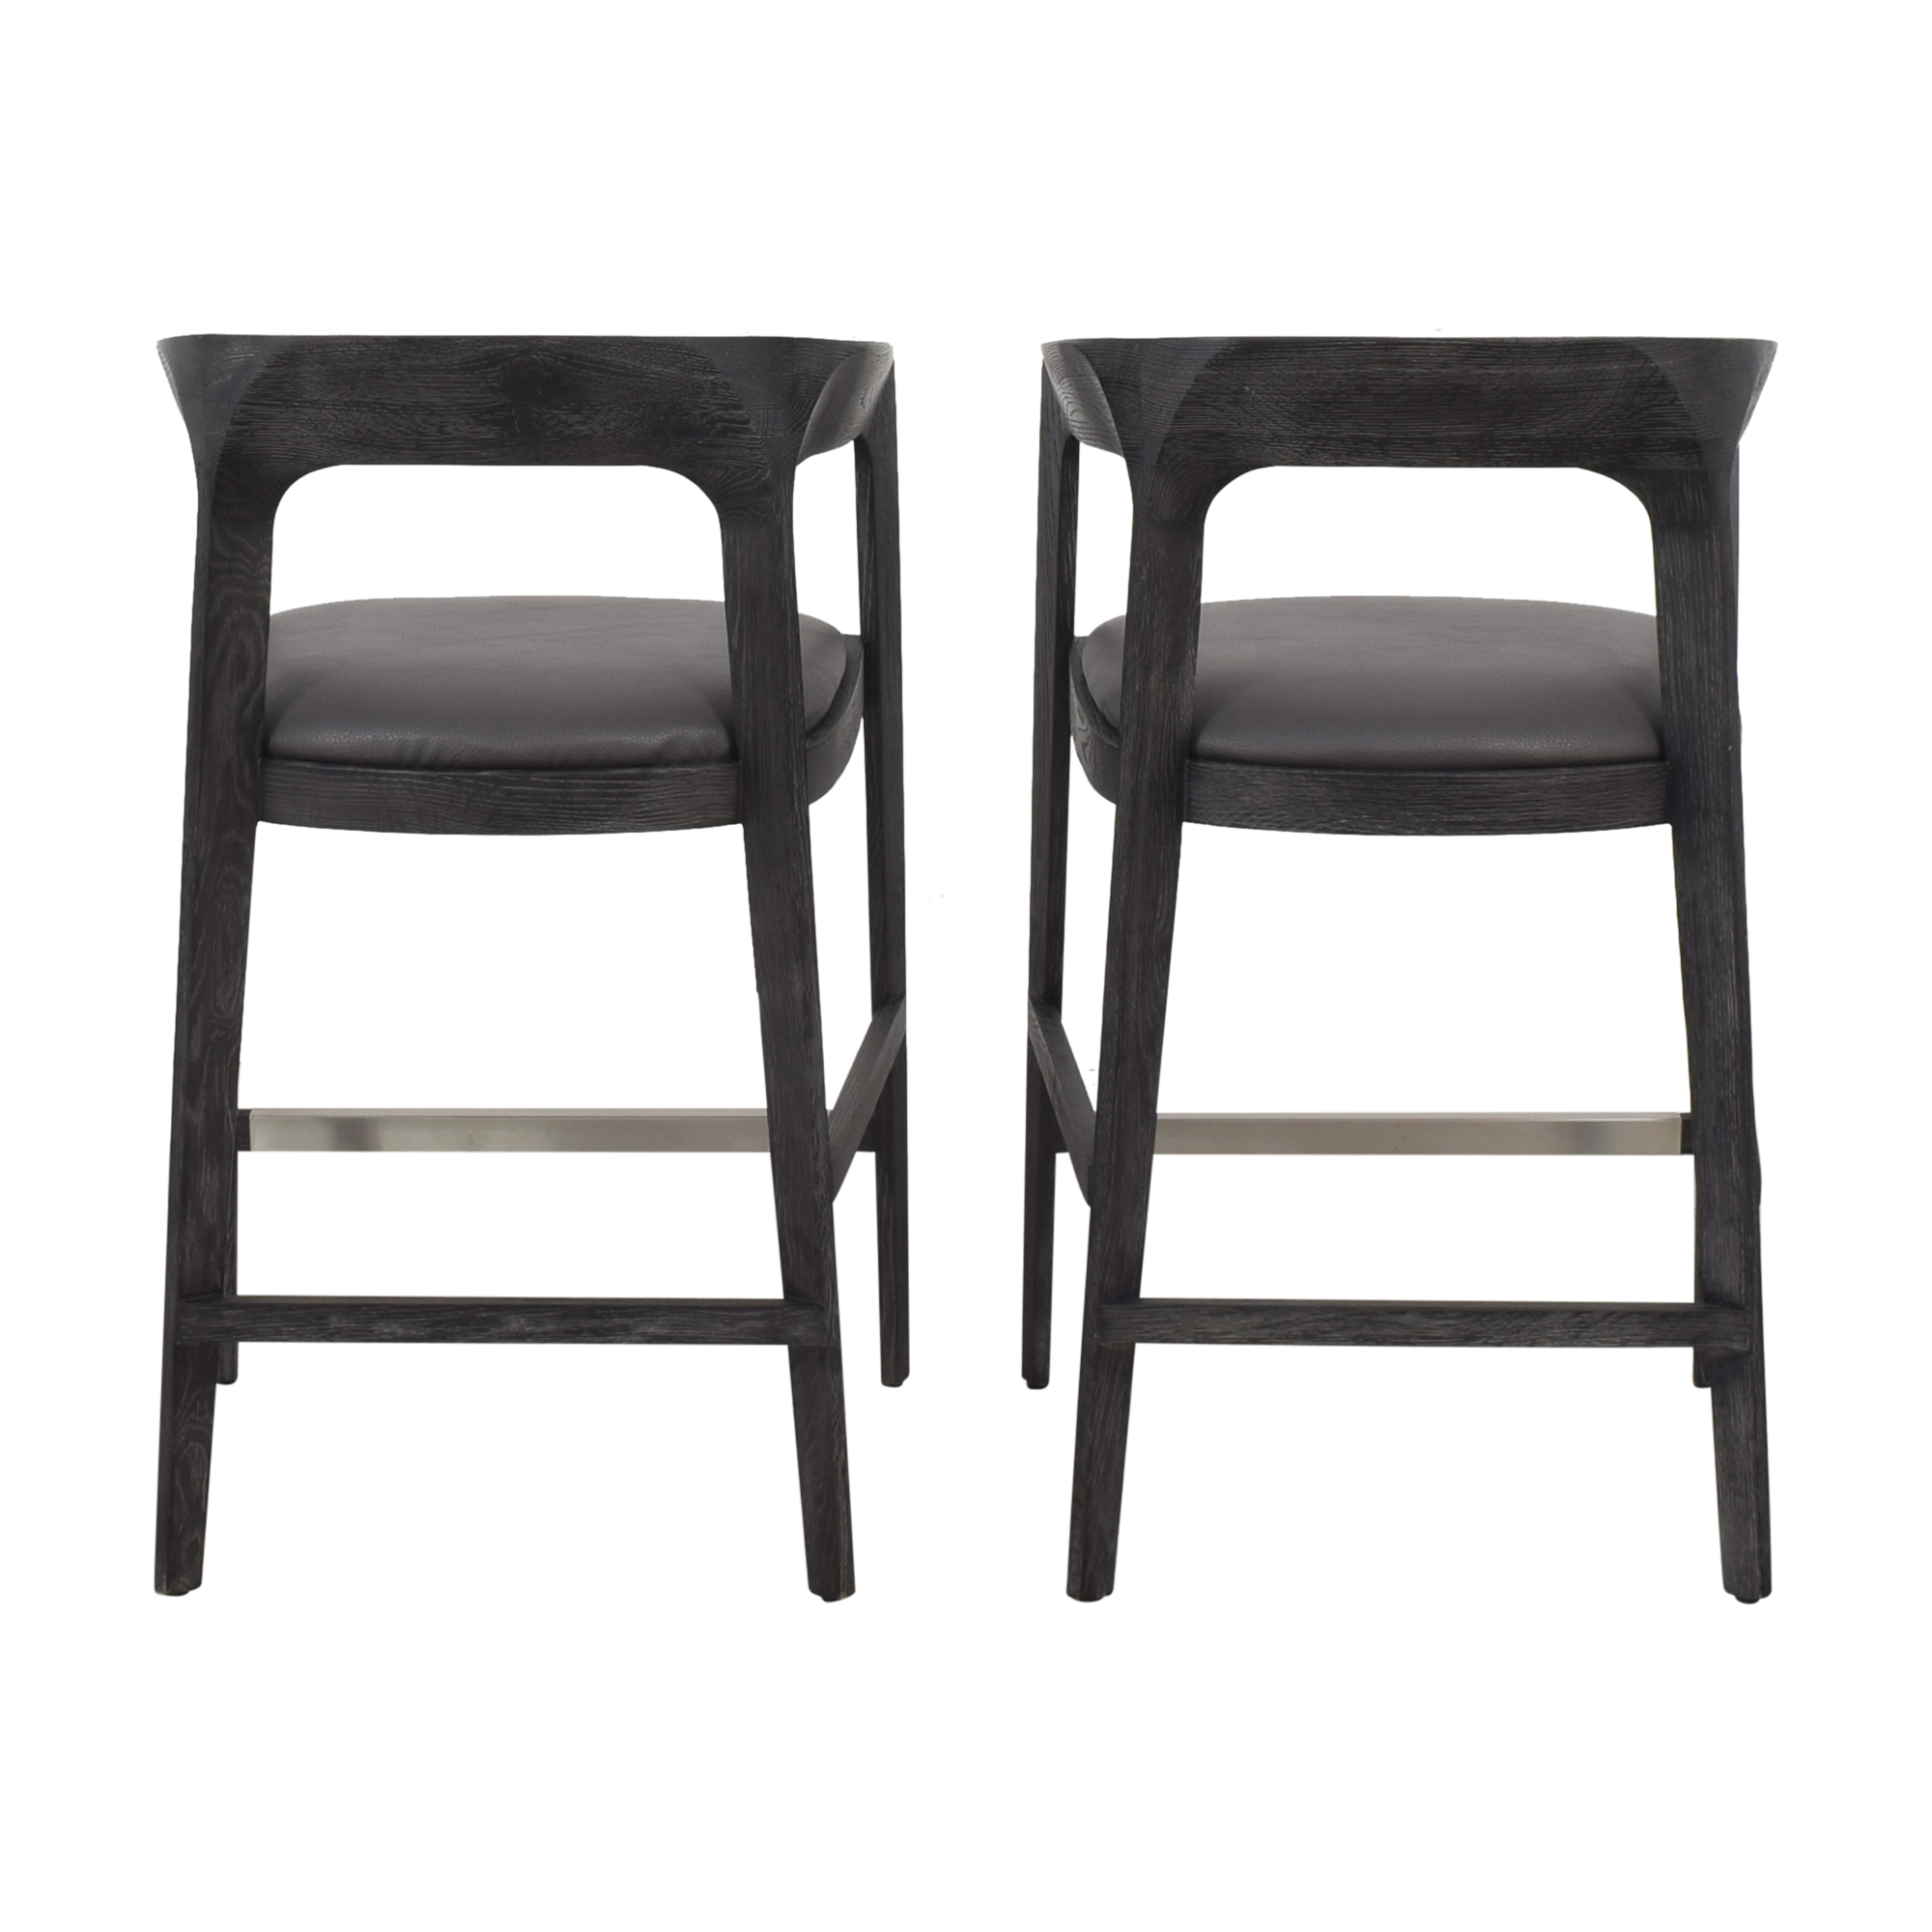 buy Interlude Home Kendra Counter Stools Interlude Home Chairs